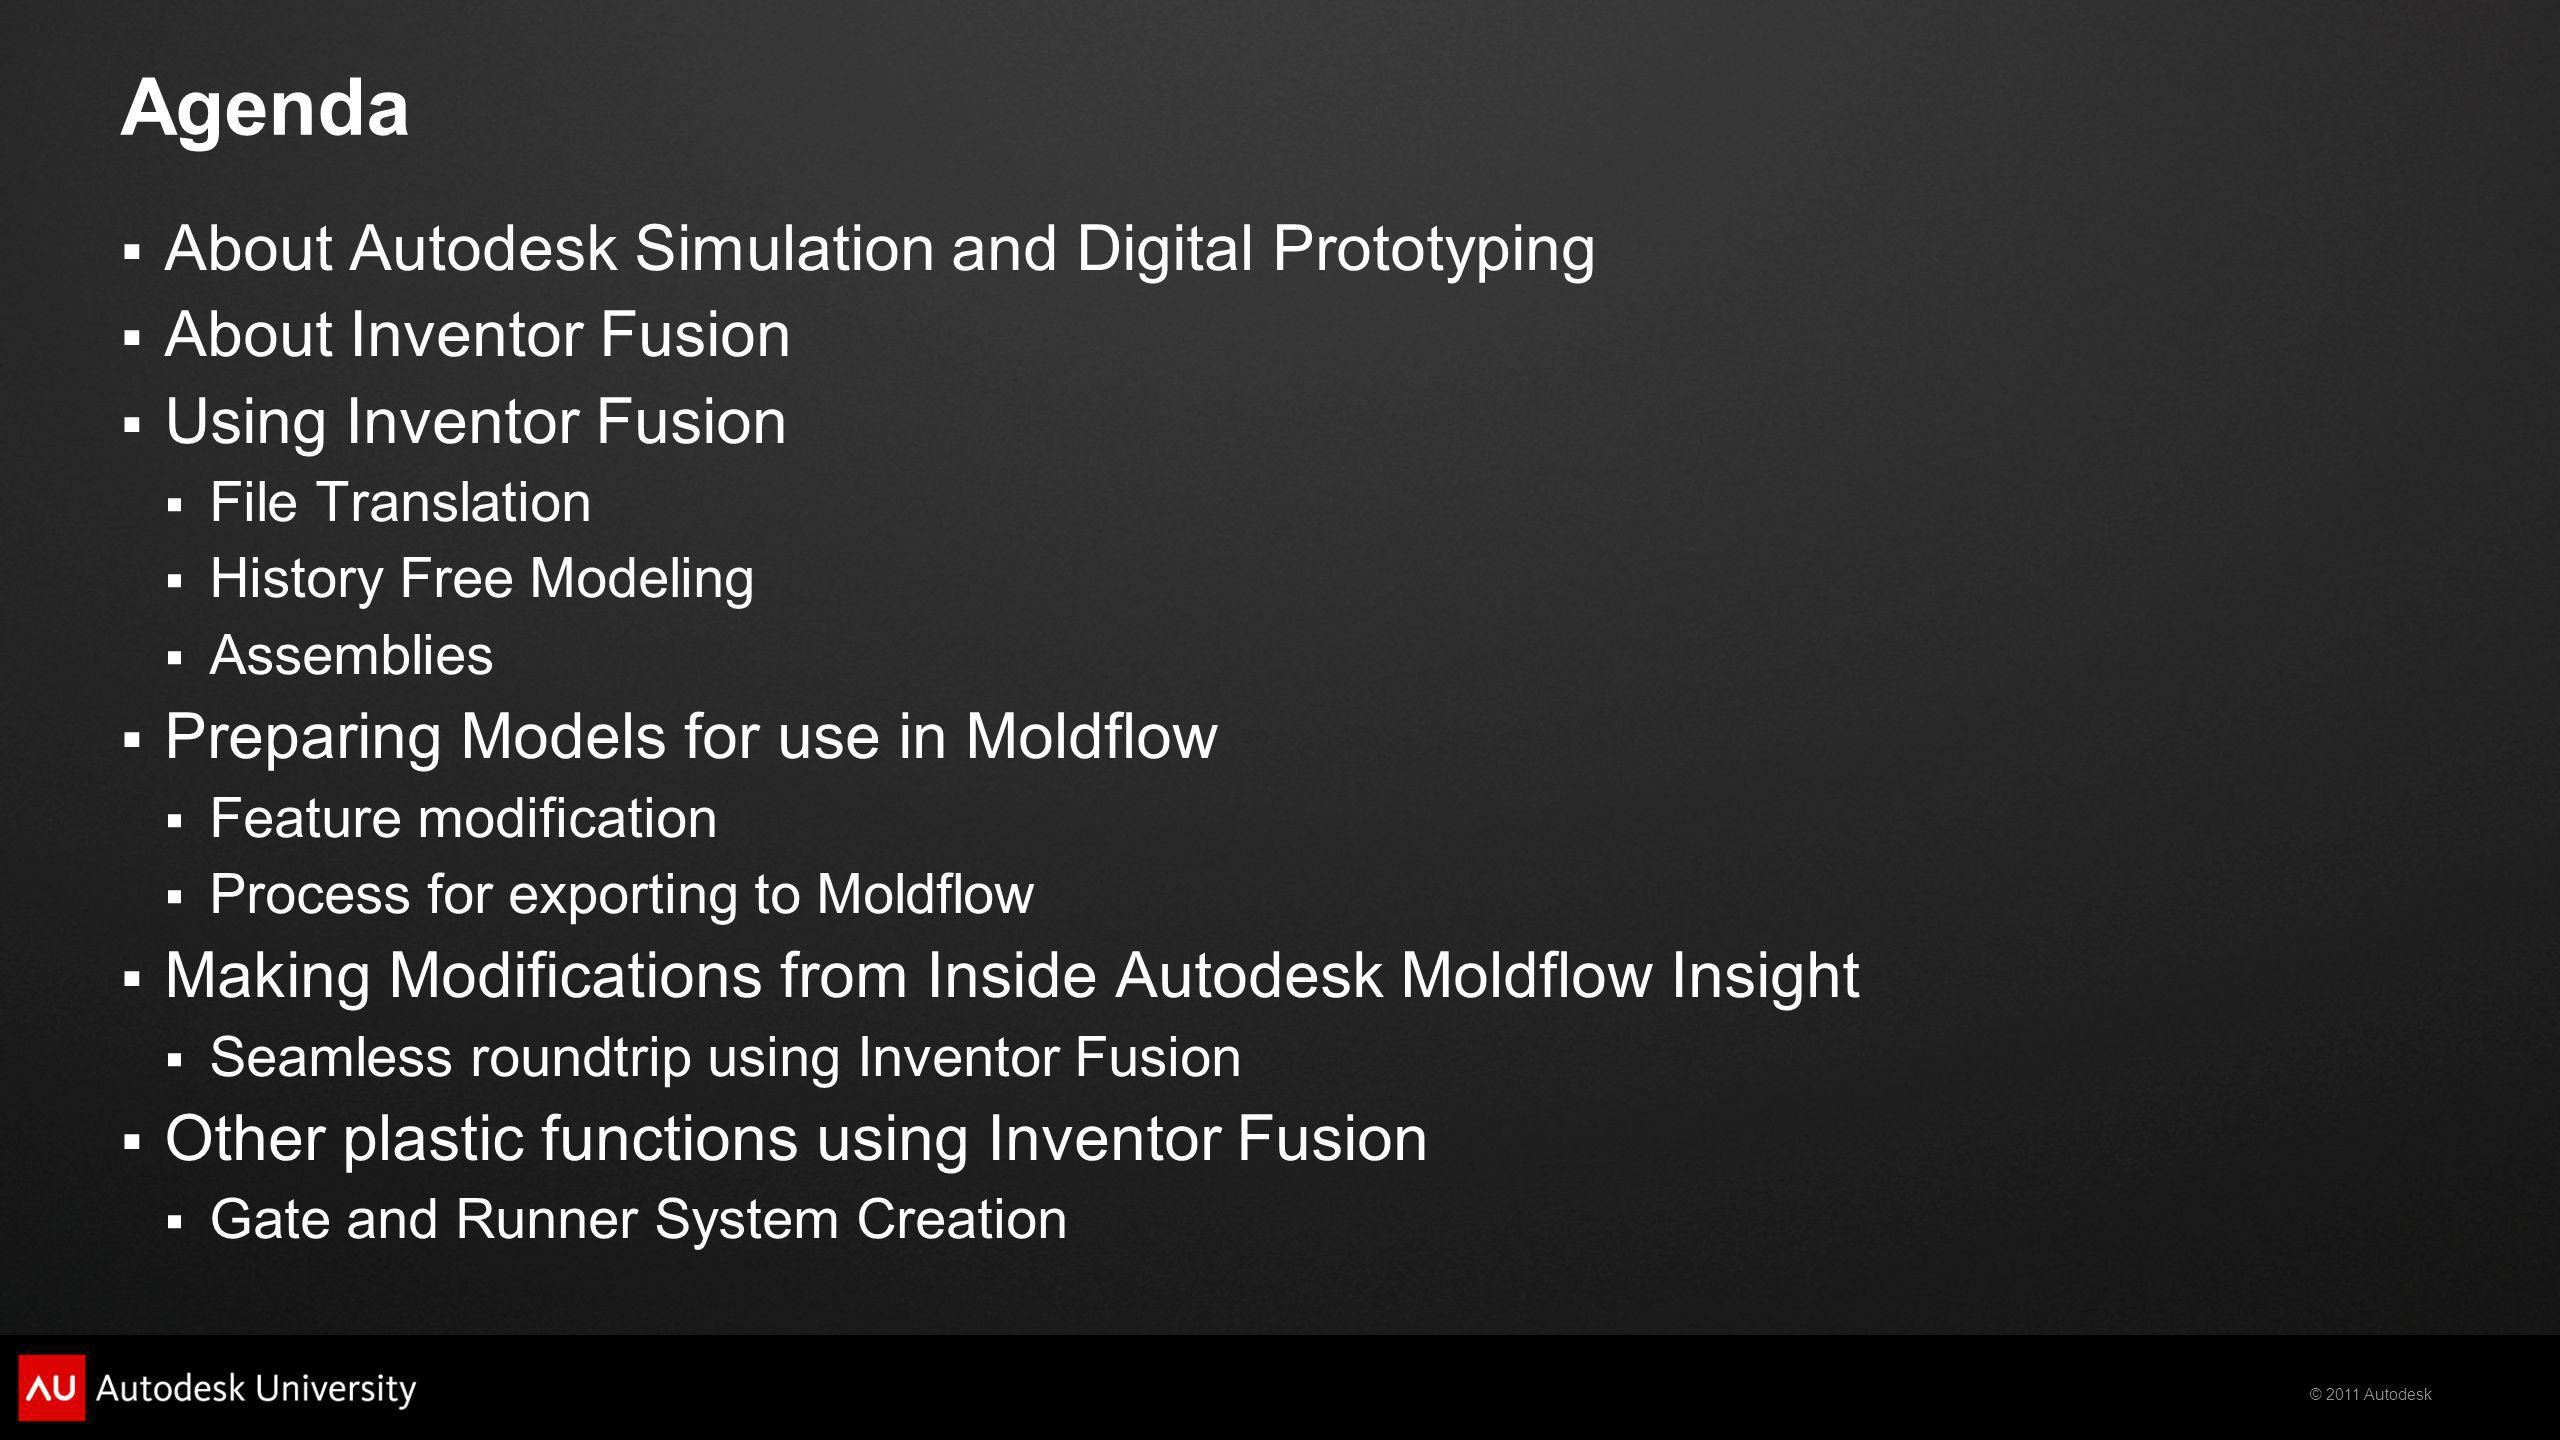 © 2011 Autodesk Agenda About Autodesk Simulation and Digital Prototyping About Inventor Fusion Using Inventor Fusion File Translation History Free Modeling Assemblies Preparing Models for use in Moldflow Feature modification Process for exporting to Moldflow Making Modifications from Inside Autodesk Moldflow Insight Seamless roundtrip using Inventor Fusion Other plastic functions using Inventor Fusion Gate and Runner System Creation